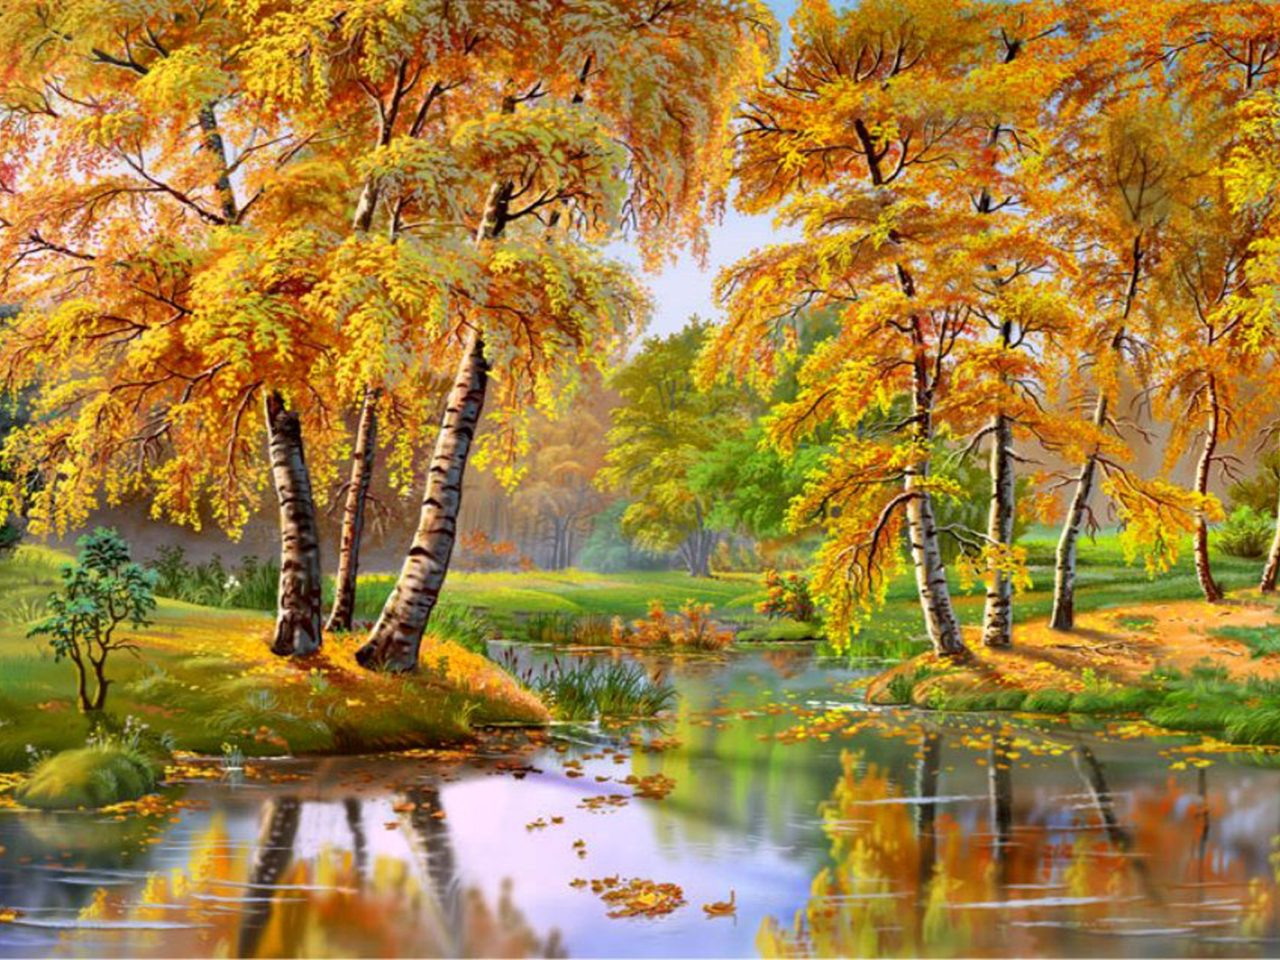 Cool Wallpapers Water Fall Wonderful Autumn Landscape River Trees 087537